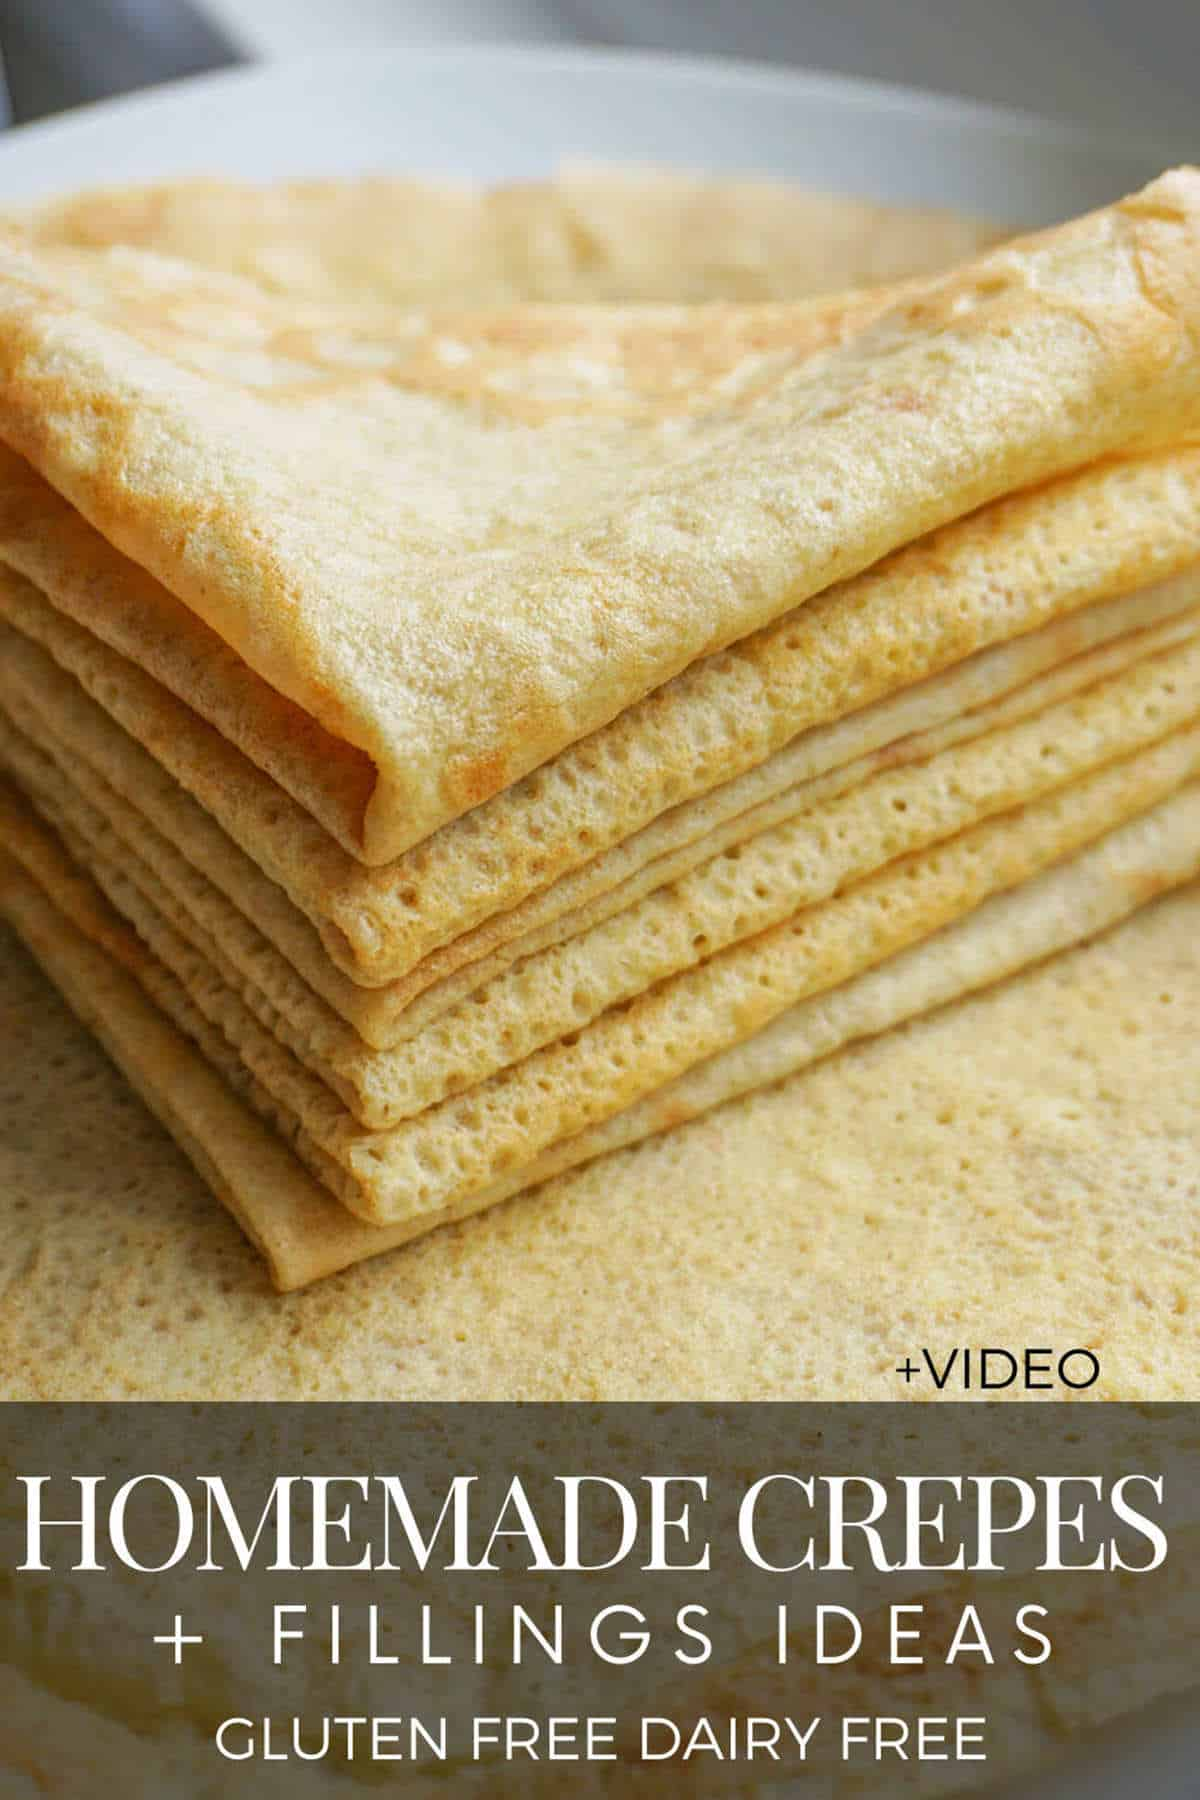 Gluten Free Crepes Recipe (Dairy Free) + Video: With Sweet Or Savory Filling Ideas.